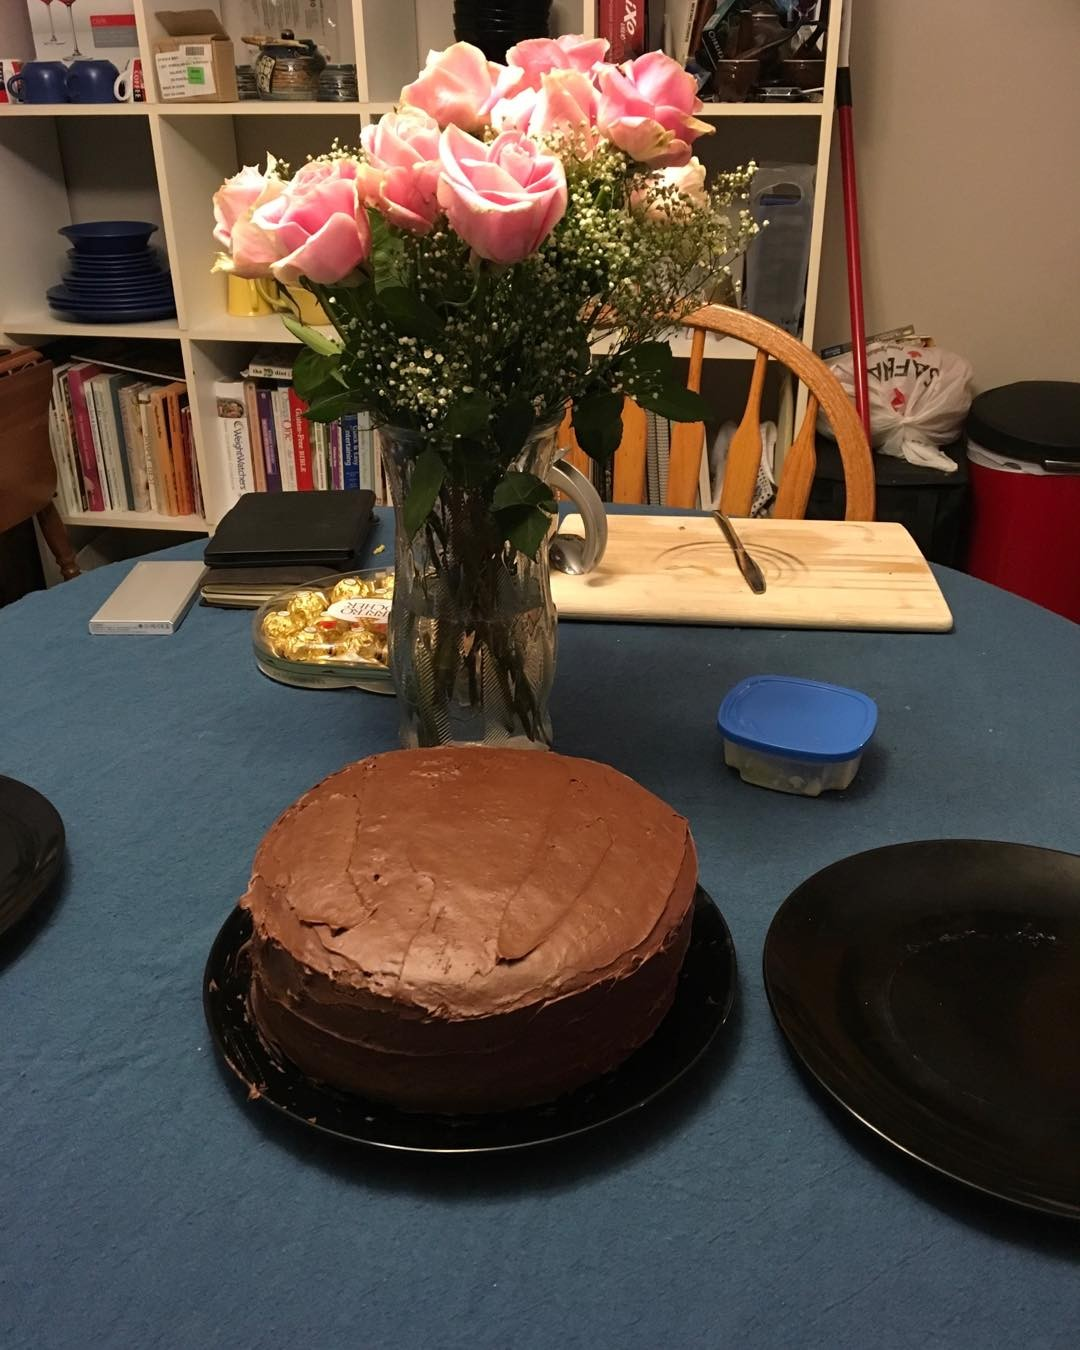 Glad to share this birthday with @swimmer114 (flowers and homemade cake courtesy the husbeast) 😊